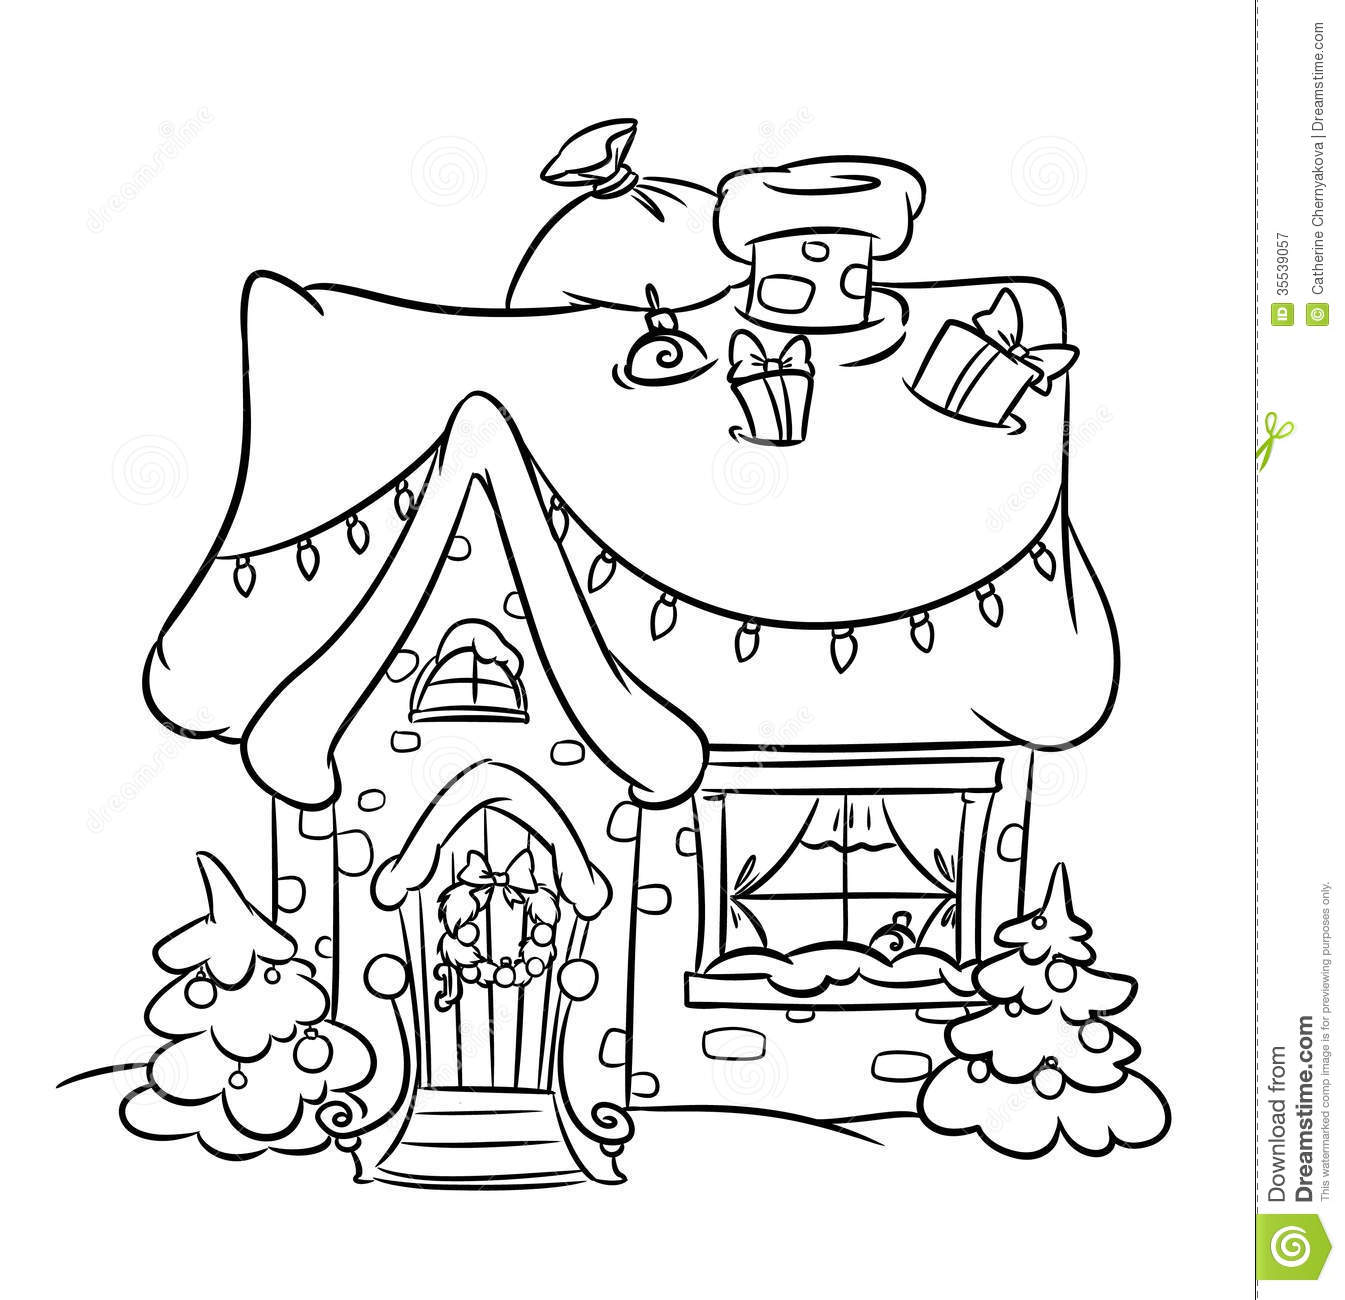 1024x774 Printable Christmas Gingerbread House Coloring Pages 1345x1300 Snow Painting And Drawing Pinterest